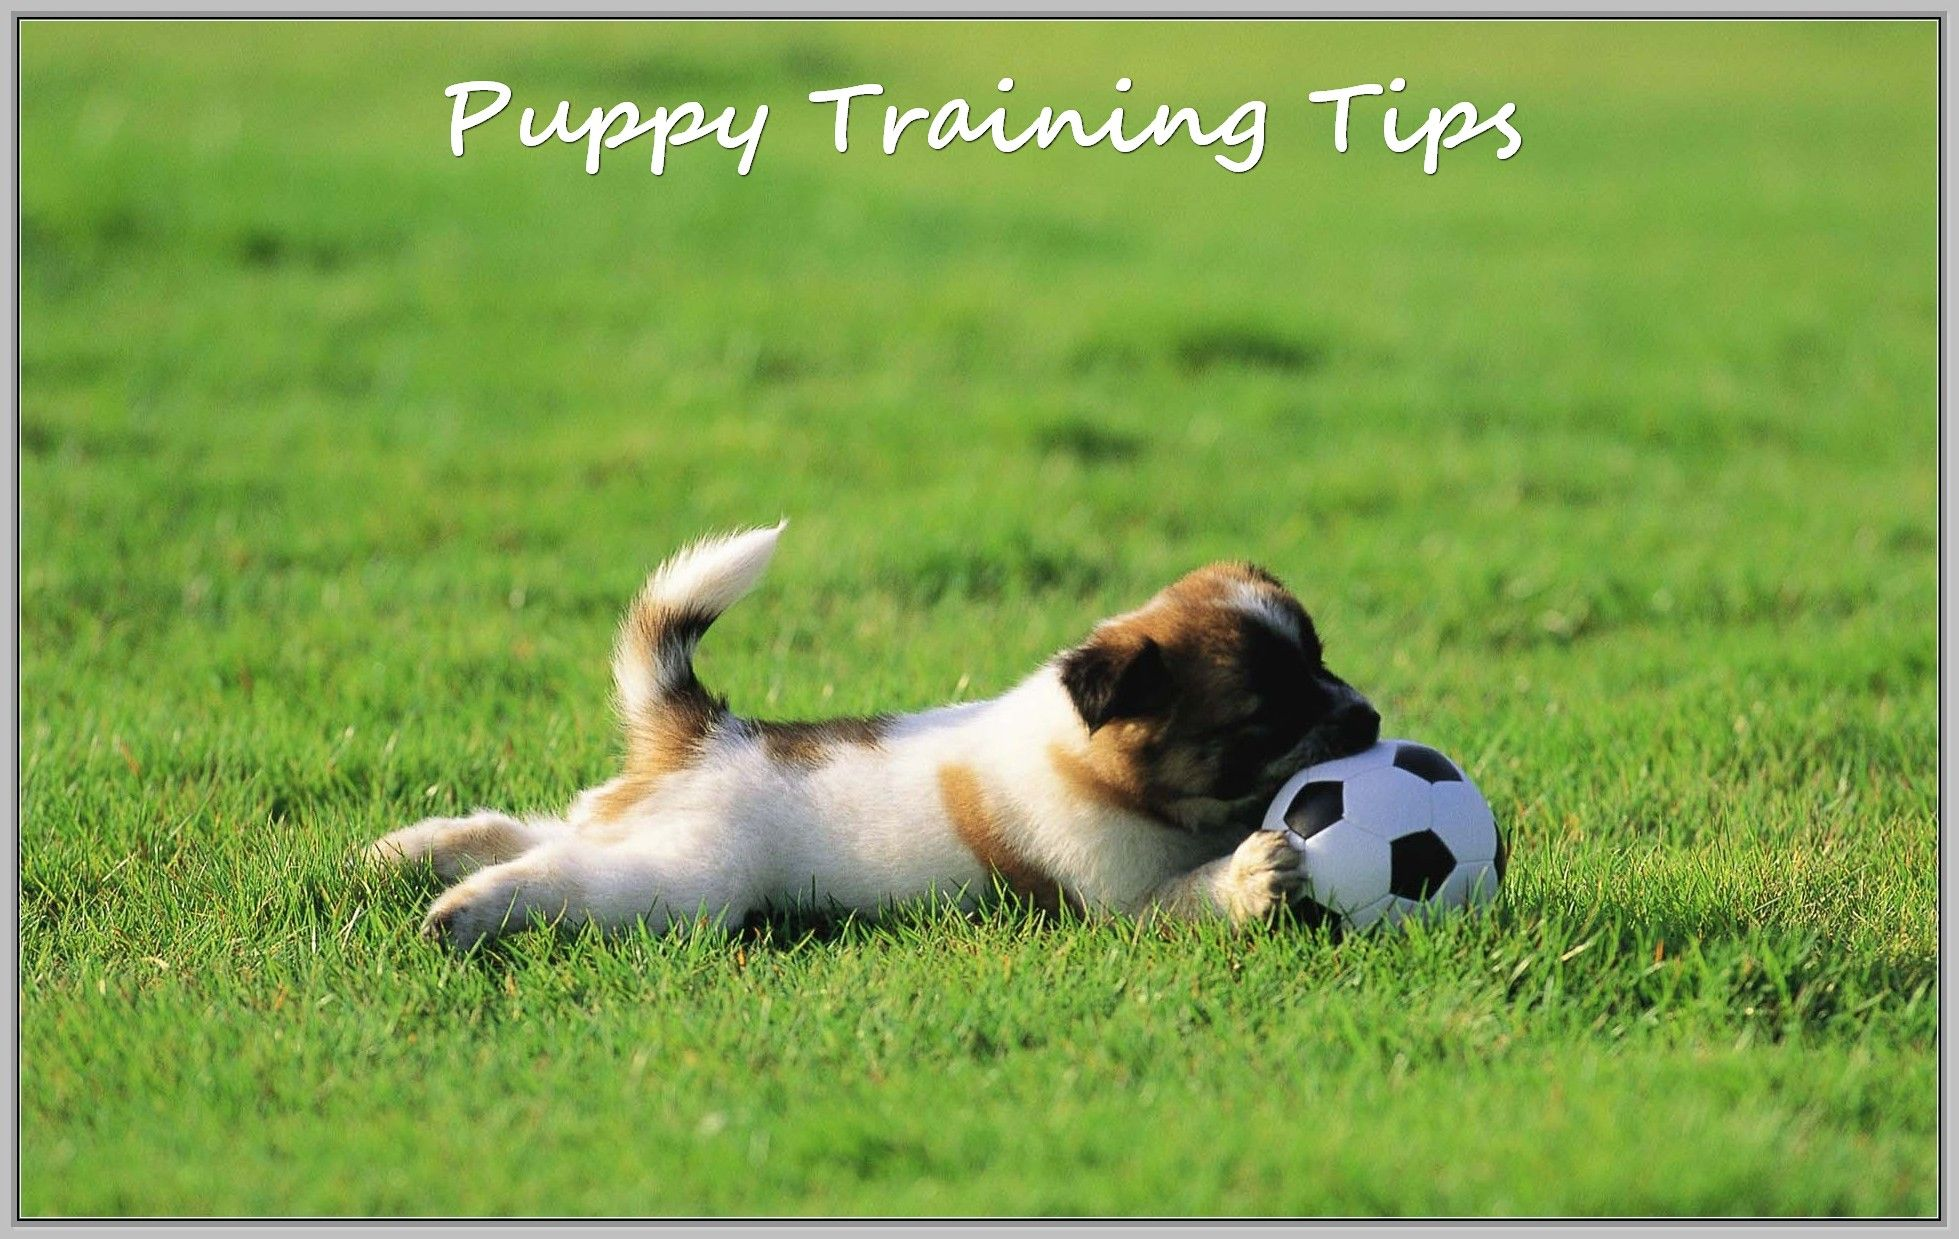 Dogs Need Training Dog Expressions Cute Dog Wallpaper Dog Allergies